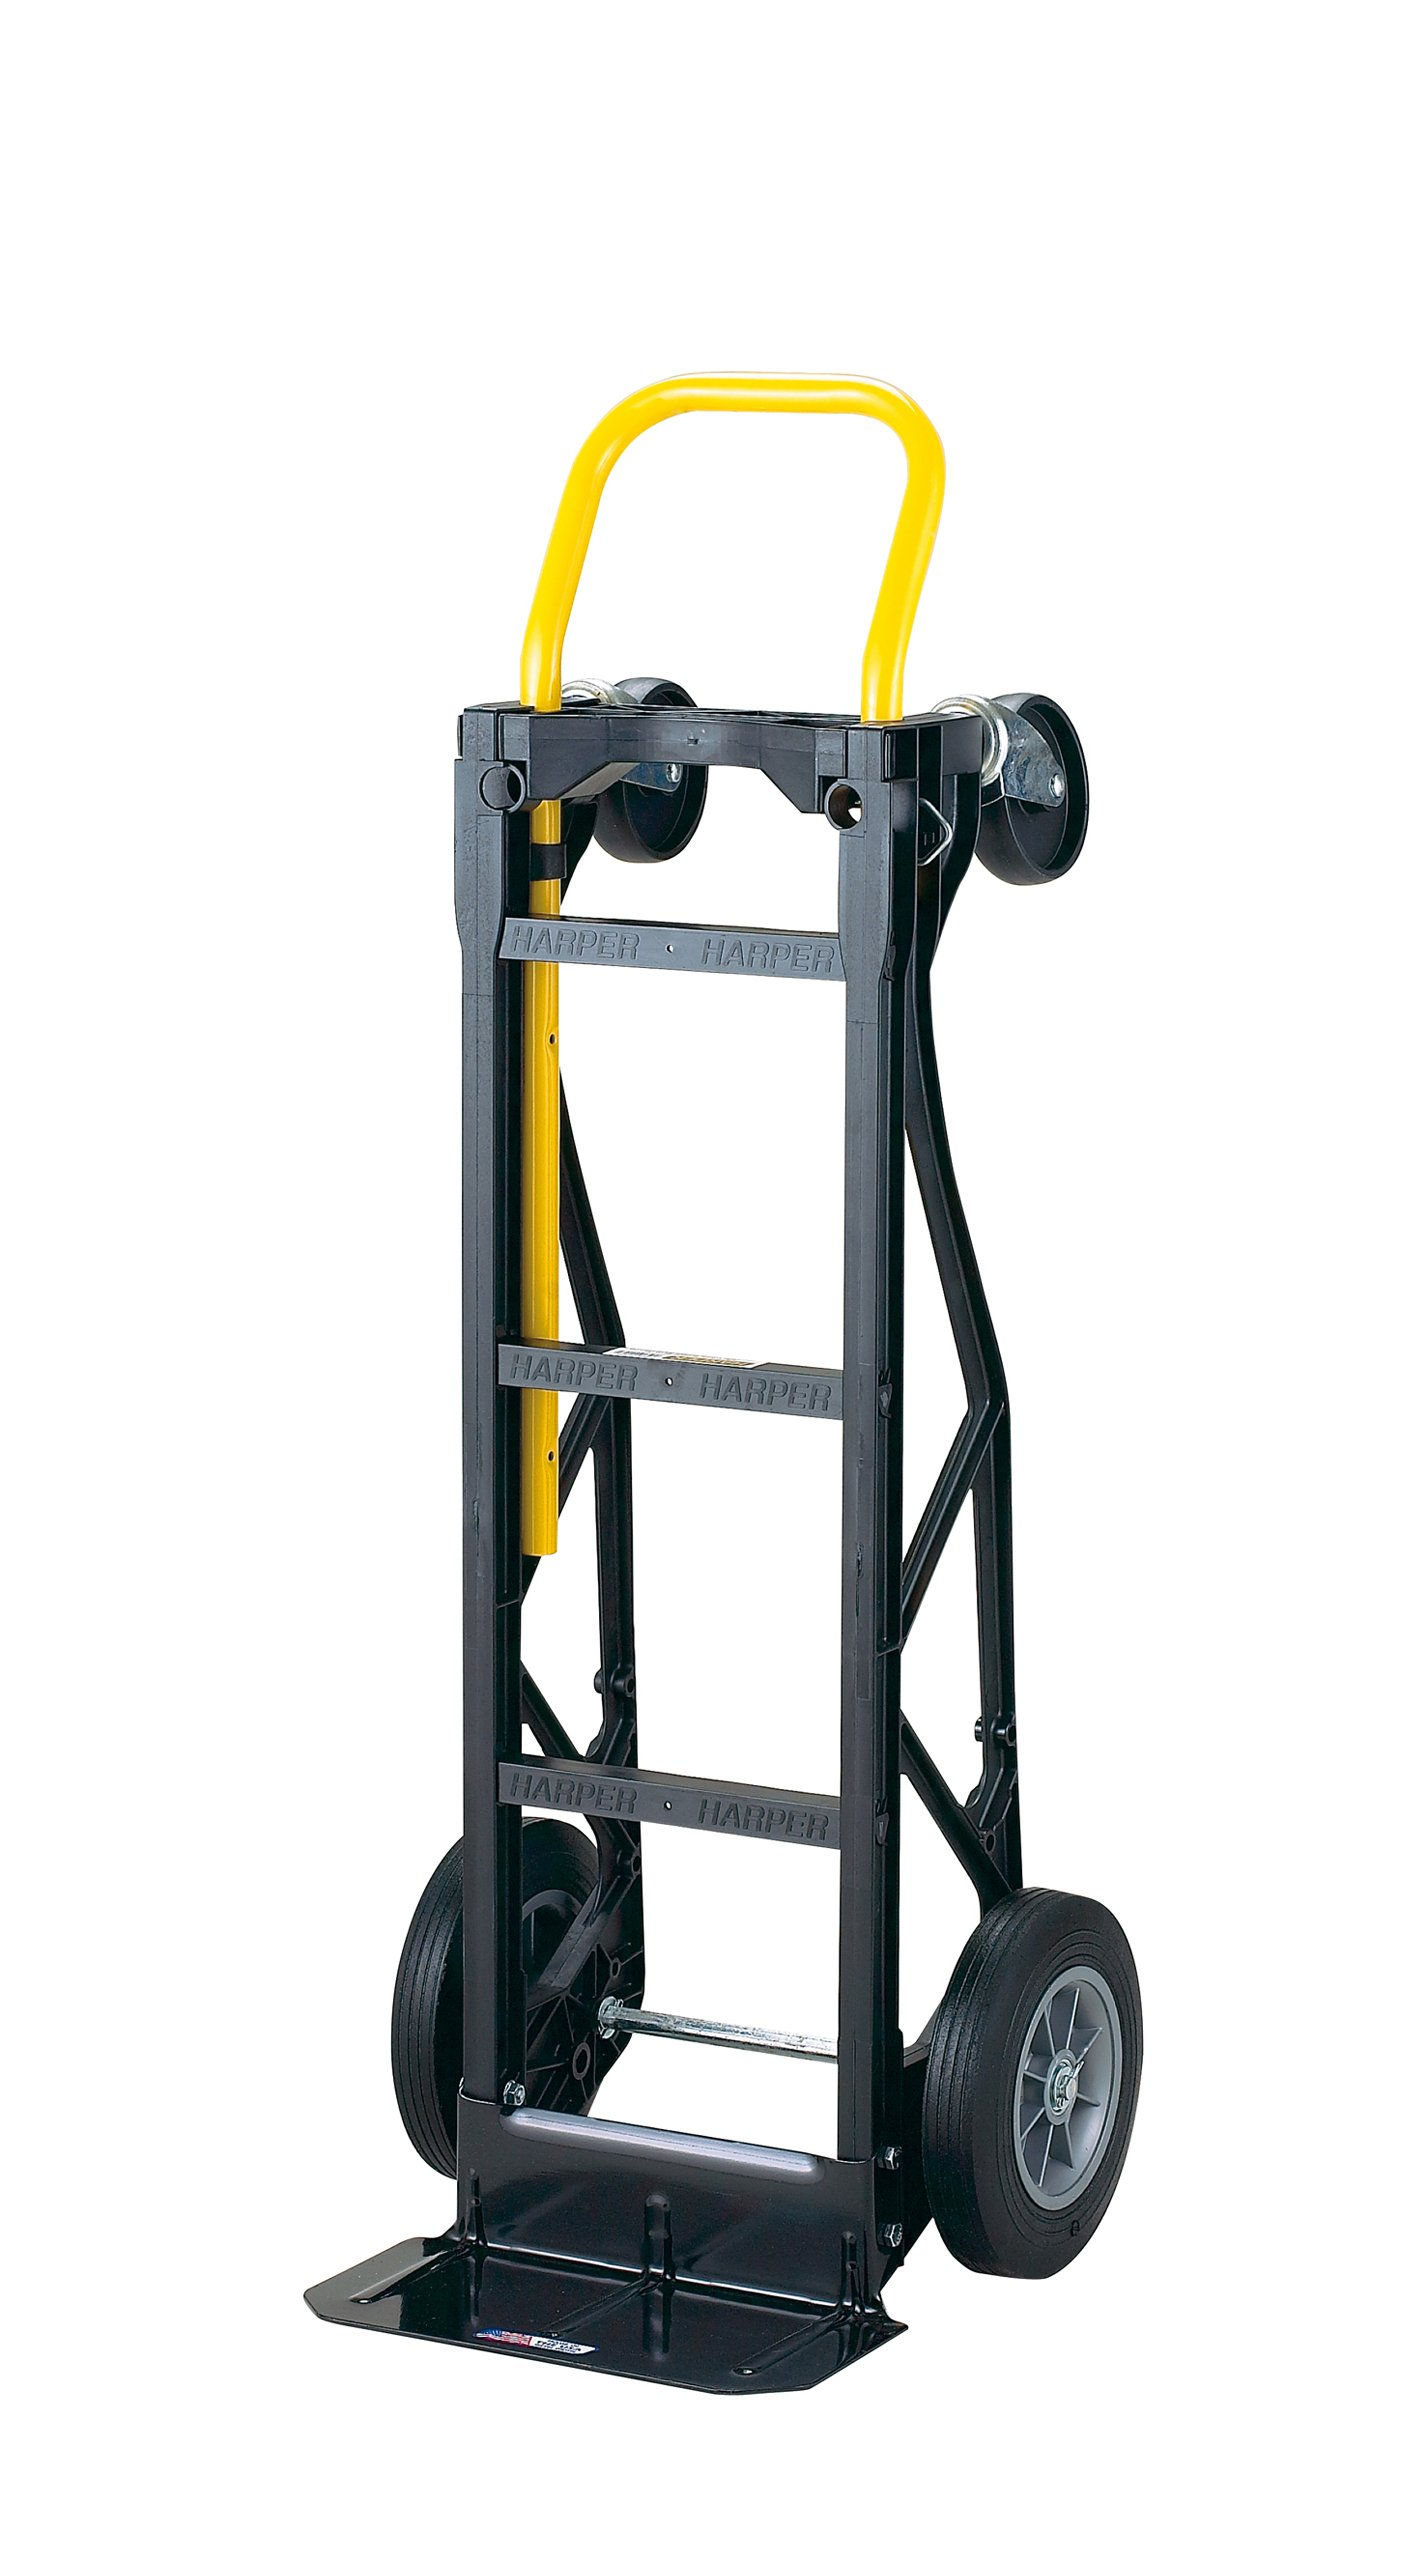 Harper Trucks 700 lb Capacity Glass Filled Nylon Convertible Hand Truck and Dolly with 10'' Flat-Free Solid Rubber  Wheels